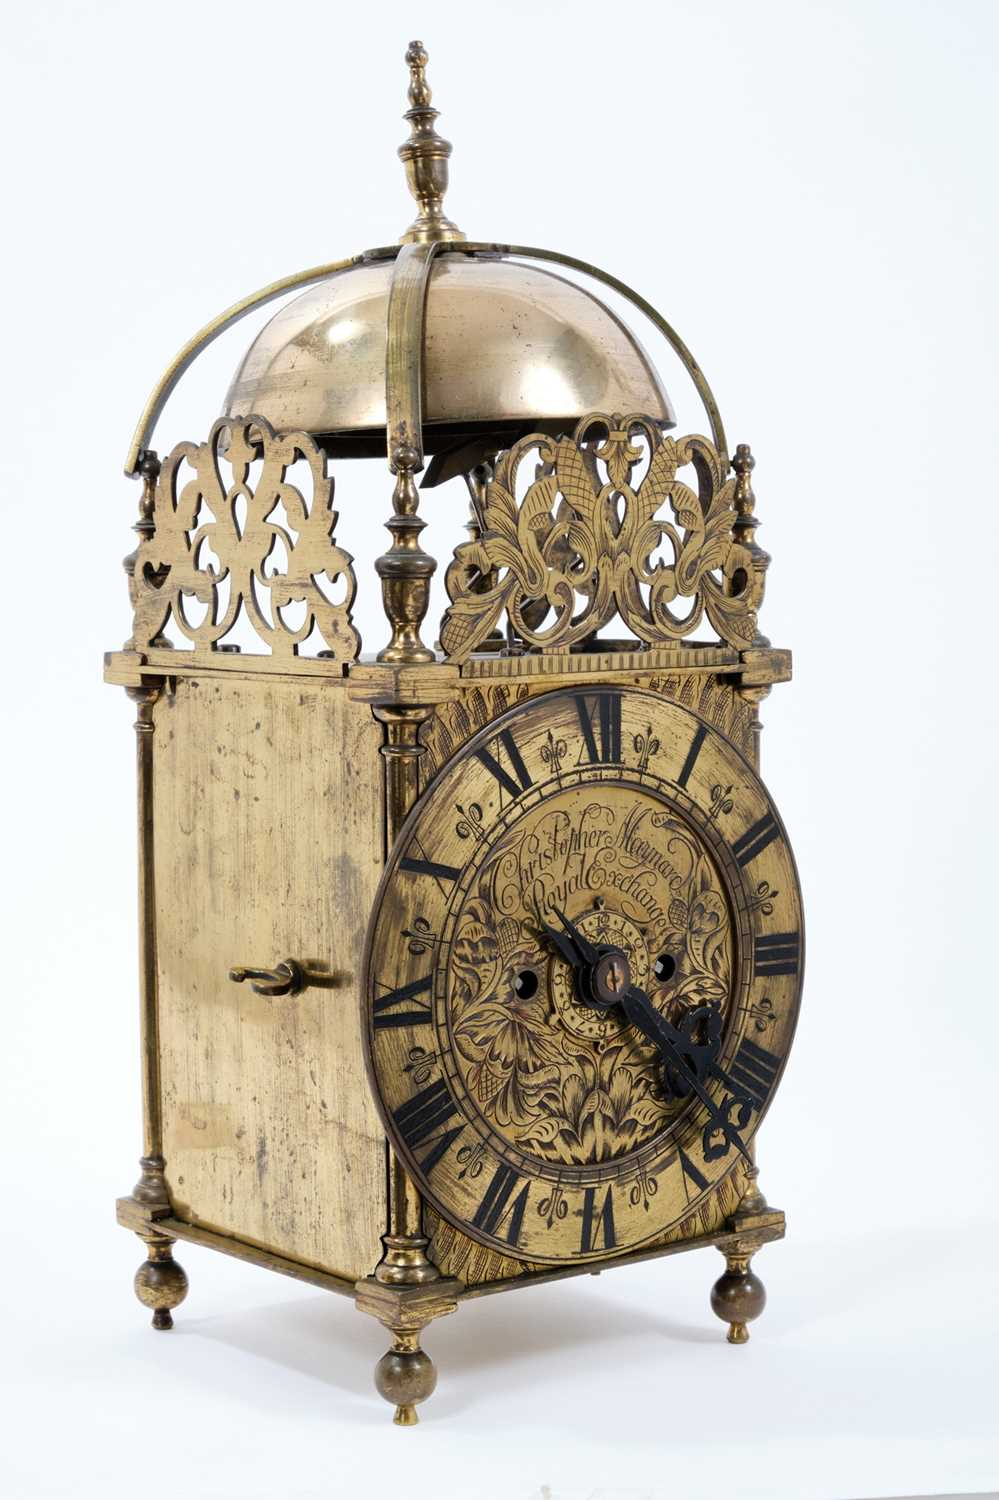 Good quality brass lantern clock Provenance: Removed from Argyll House, Kings Road, London - Image 2 of 3